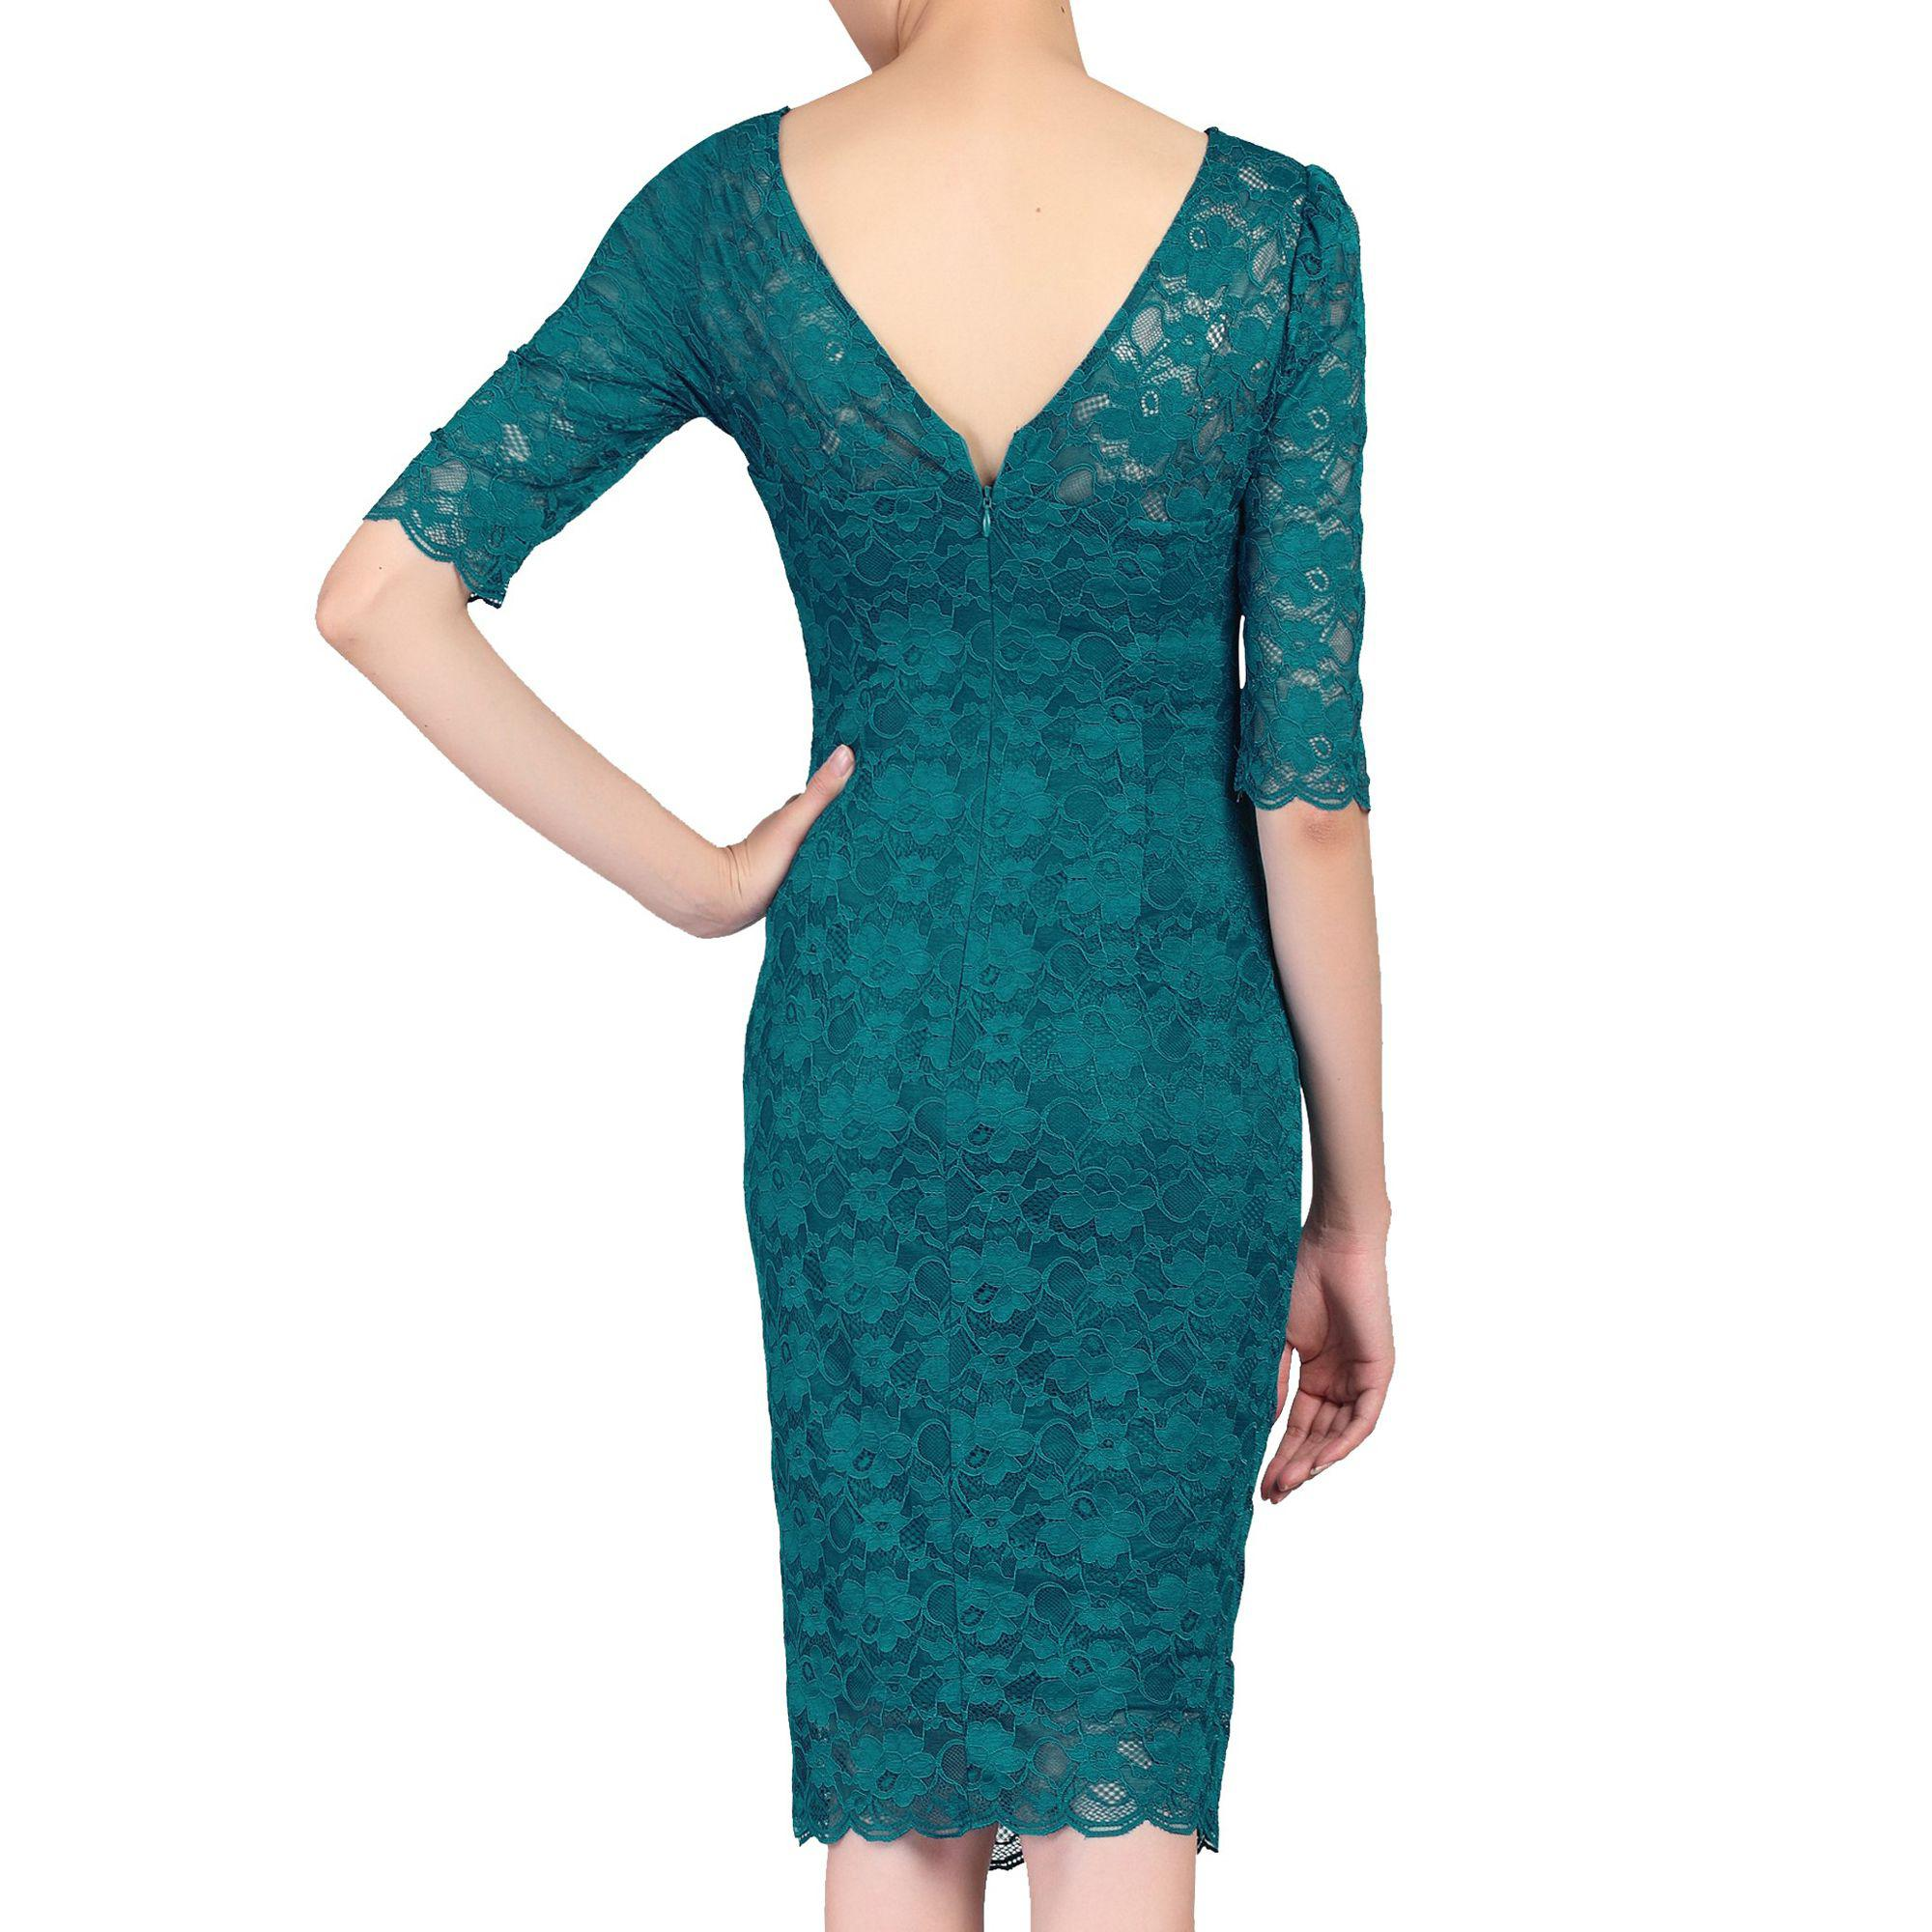 d95eb4f497a Jolie Moi - Blue Dark Turquoise 3 4 Sleeves V Neck Ruched Lace Dress -.  View fullscreen